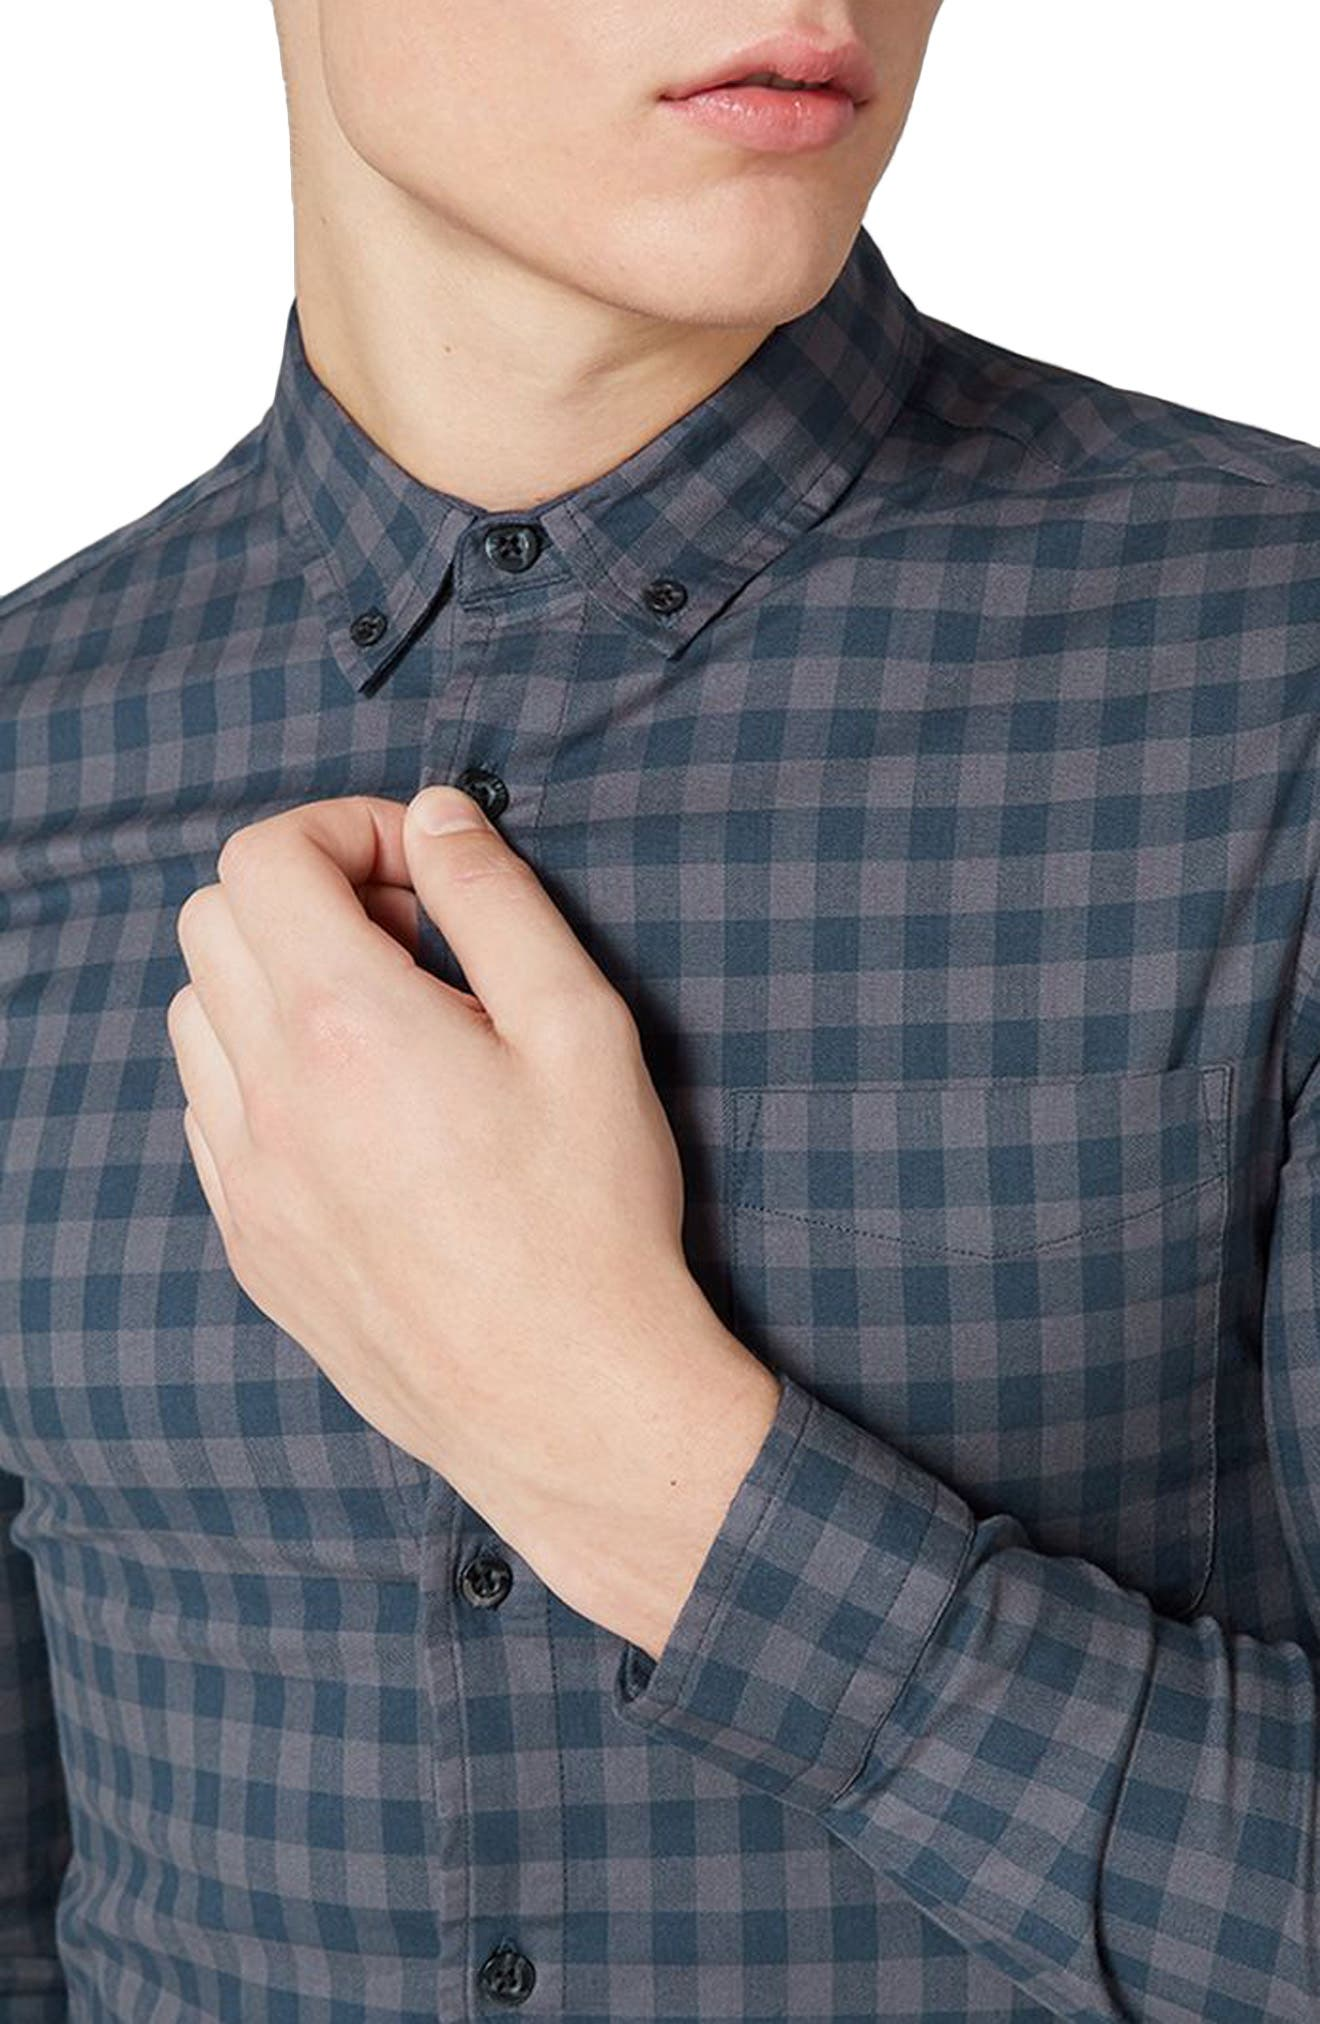 Muscle Fit Gingham Shirt,                             Alternate thumbnail 3, color,                             411